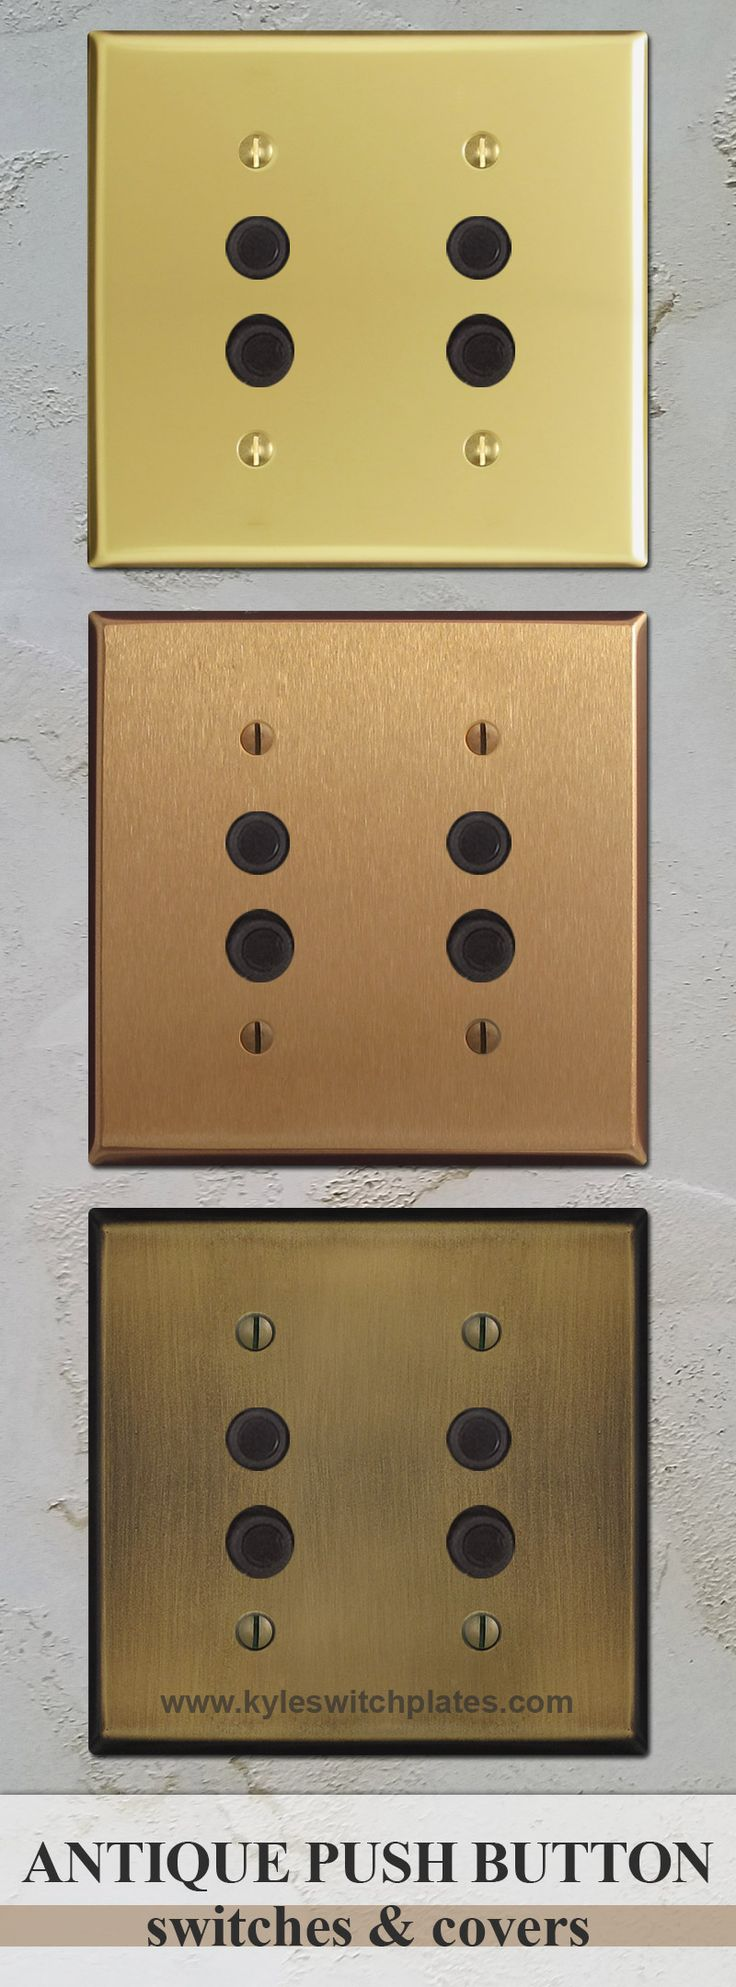 Where To Buy Switch Plate Covers 66 Best Switchplates Images On Pinterest  Light Switches Light